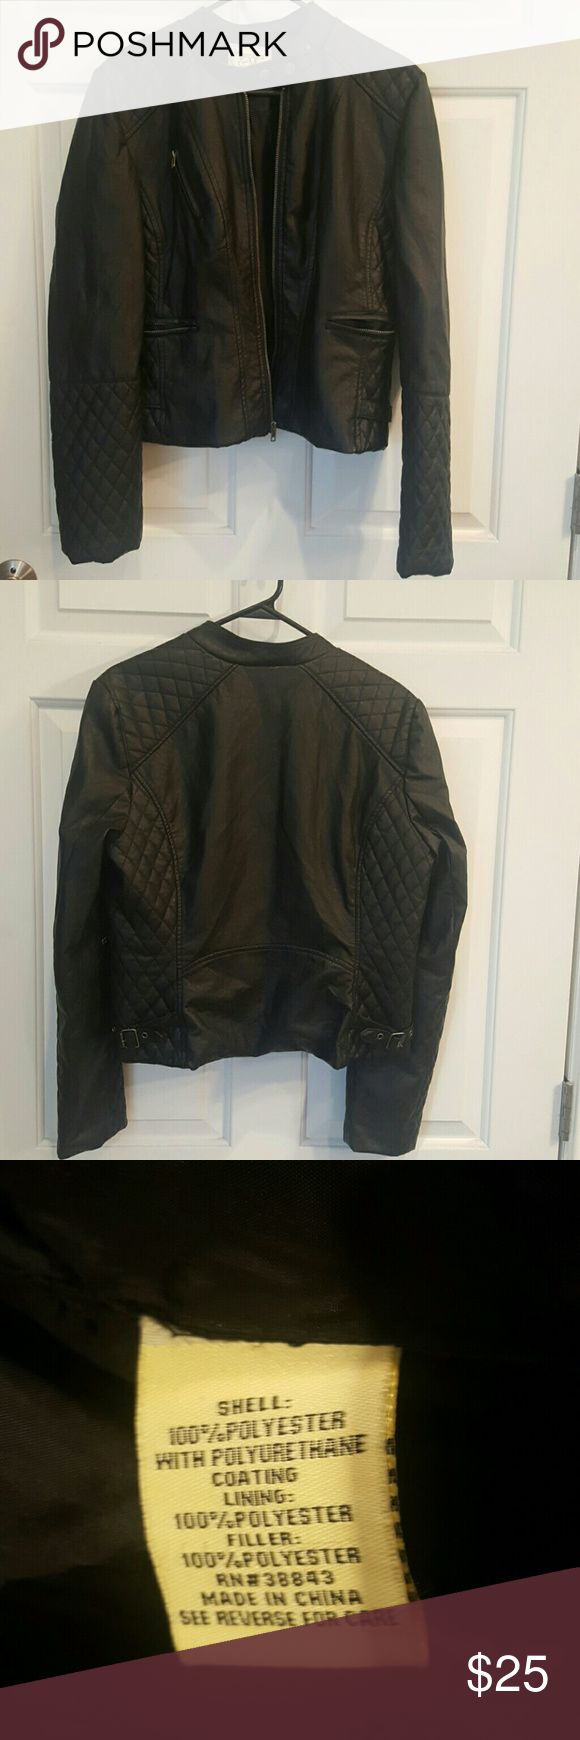 Super cute leather jacket! Stylish leather like jacket, bought a macys. Great with jeans,or a cute dress Maralyn & Me Jackets & Coats